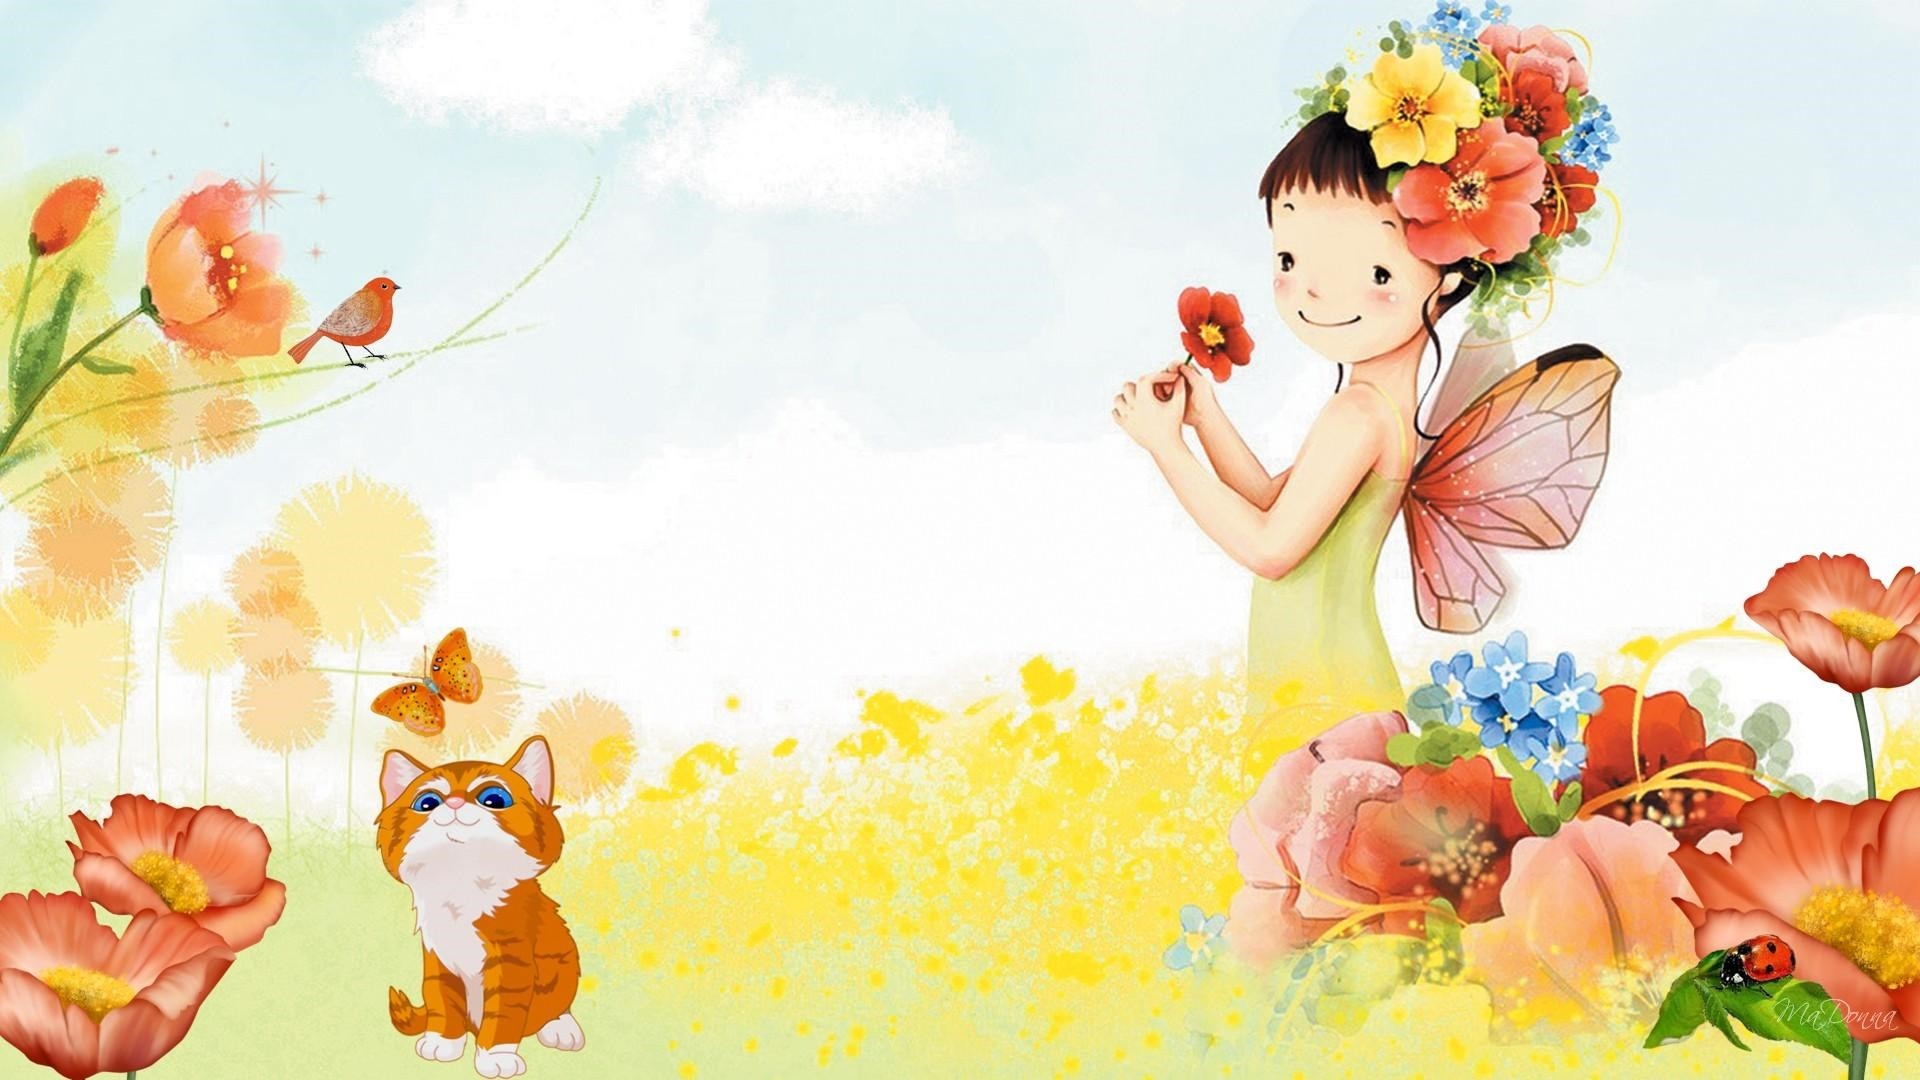 Children's Painting Desktop wallpaper